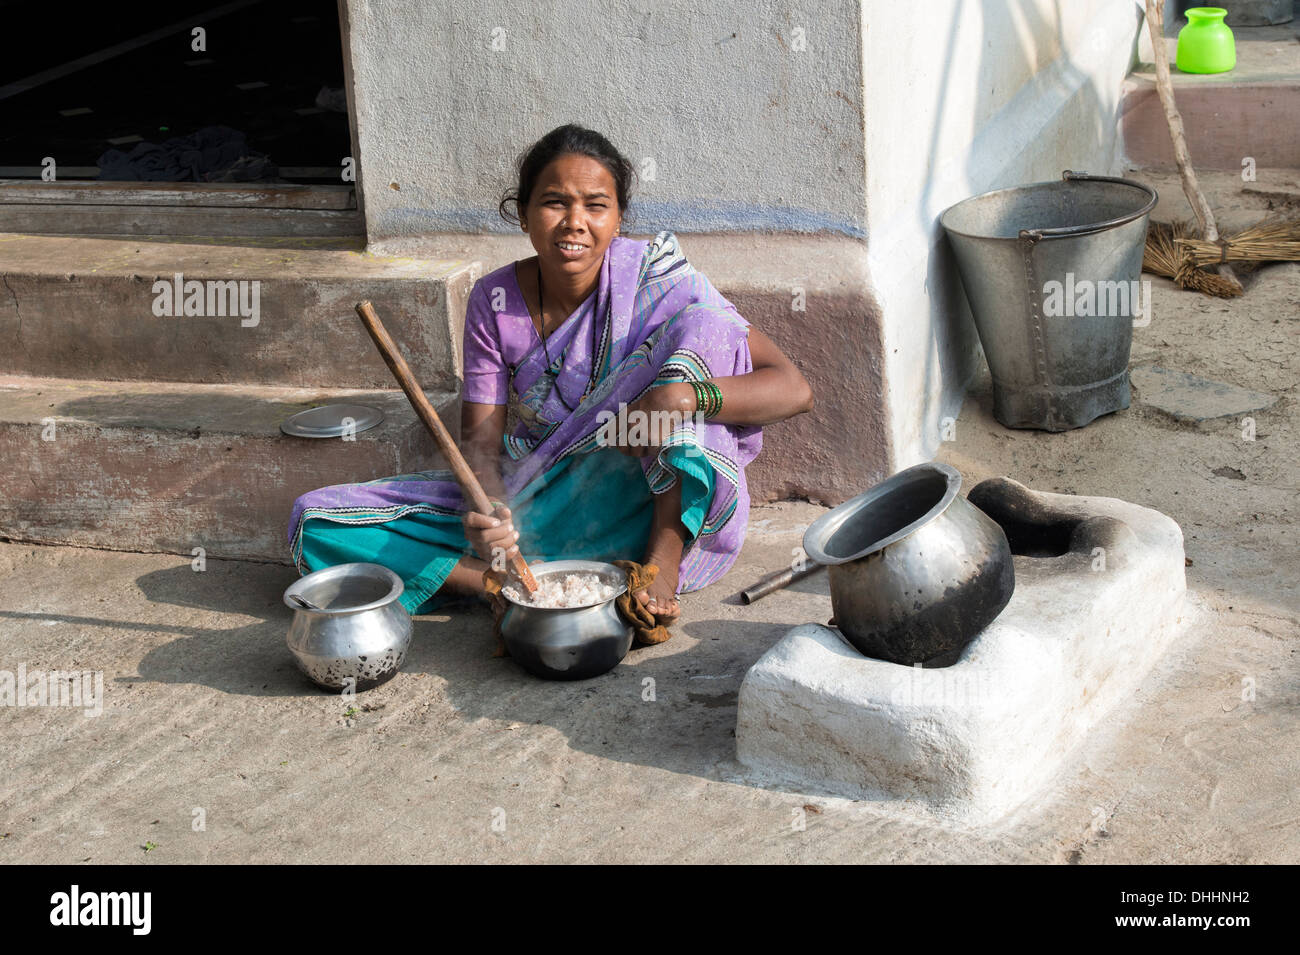 http://c8.alamy.com/comp/DHHNH2/indian-woman-cooking-rice-on-an-open-fire-outside-her-home-in-a-rural-DHHNH2.jpg Indian Woman Cooking